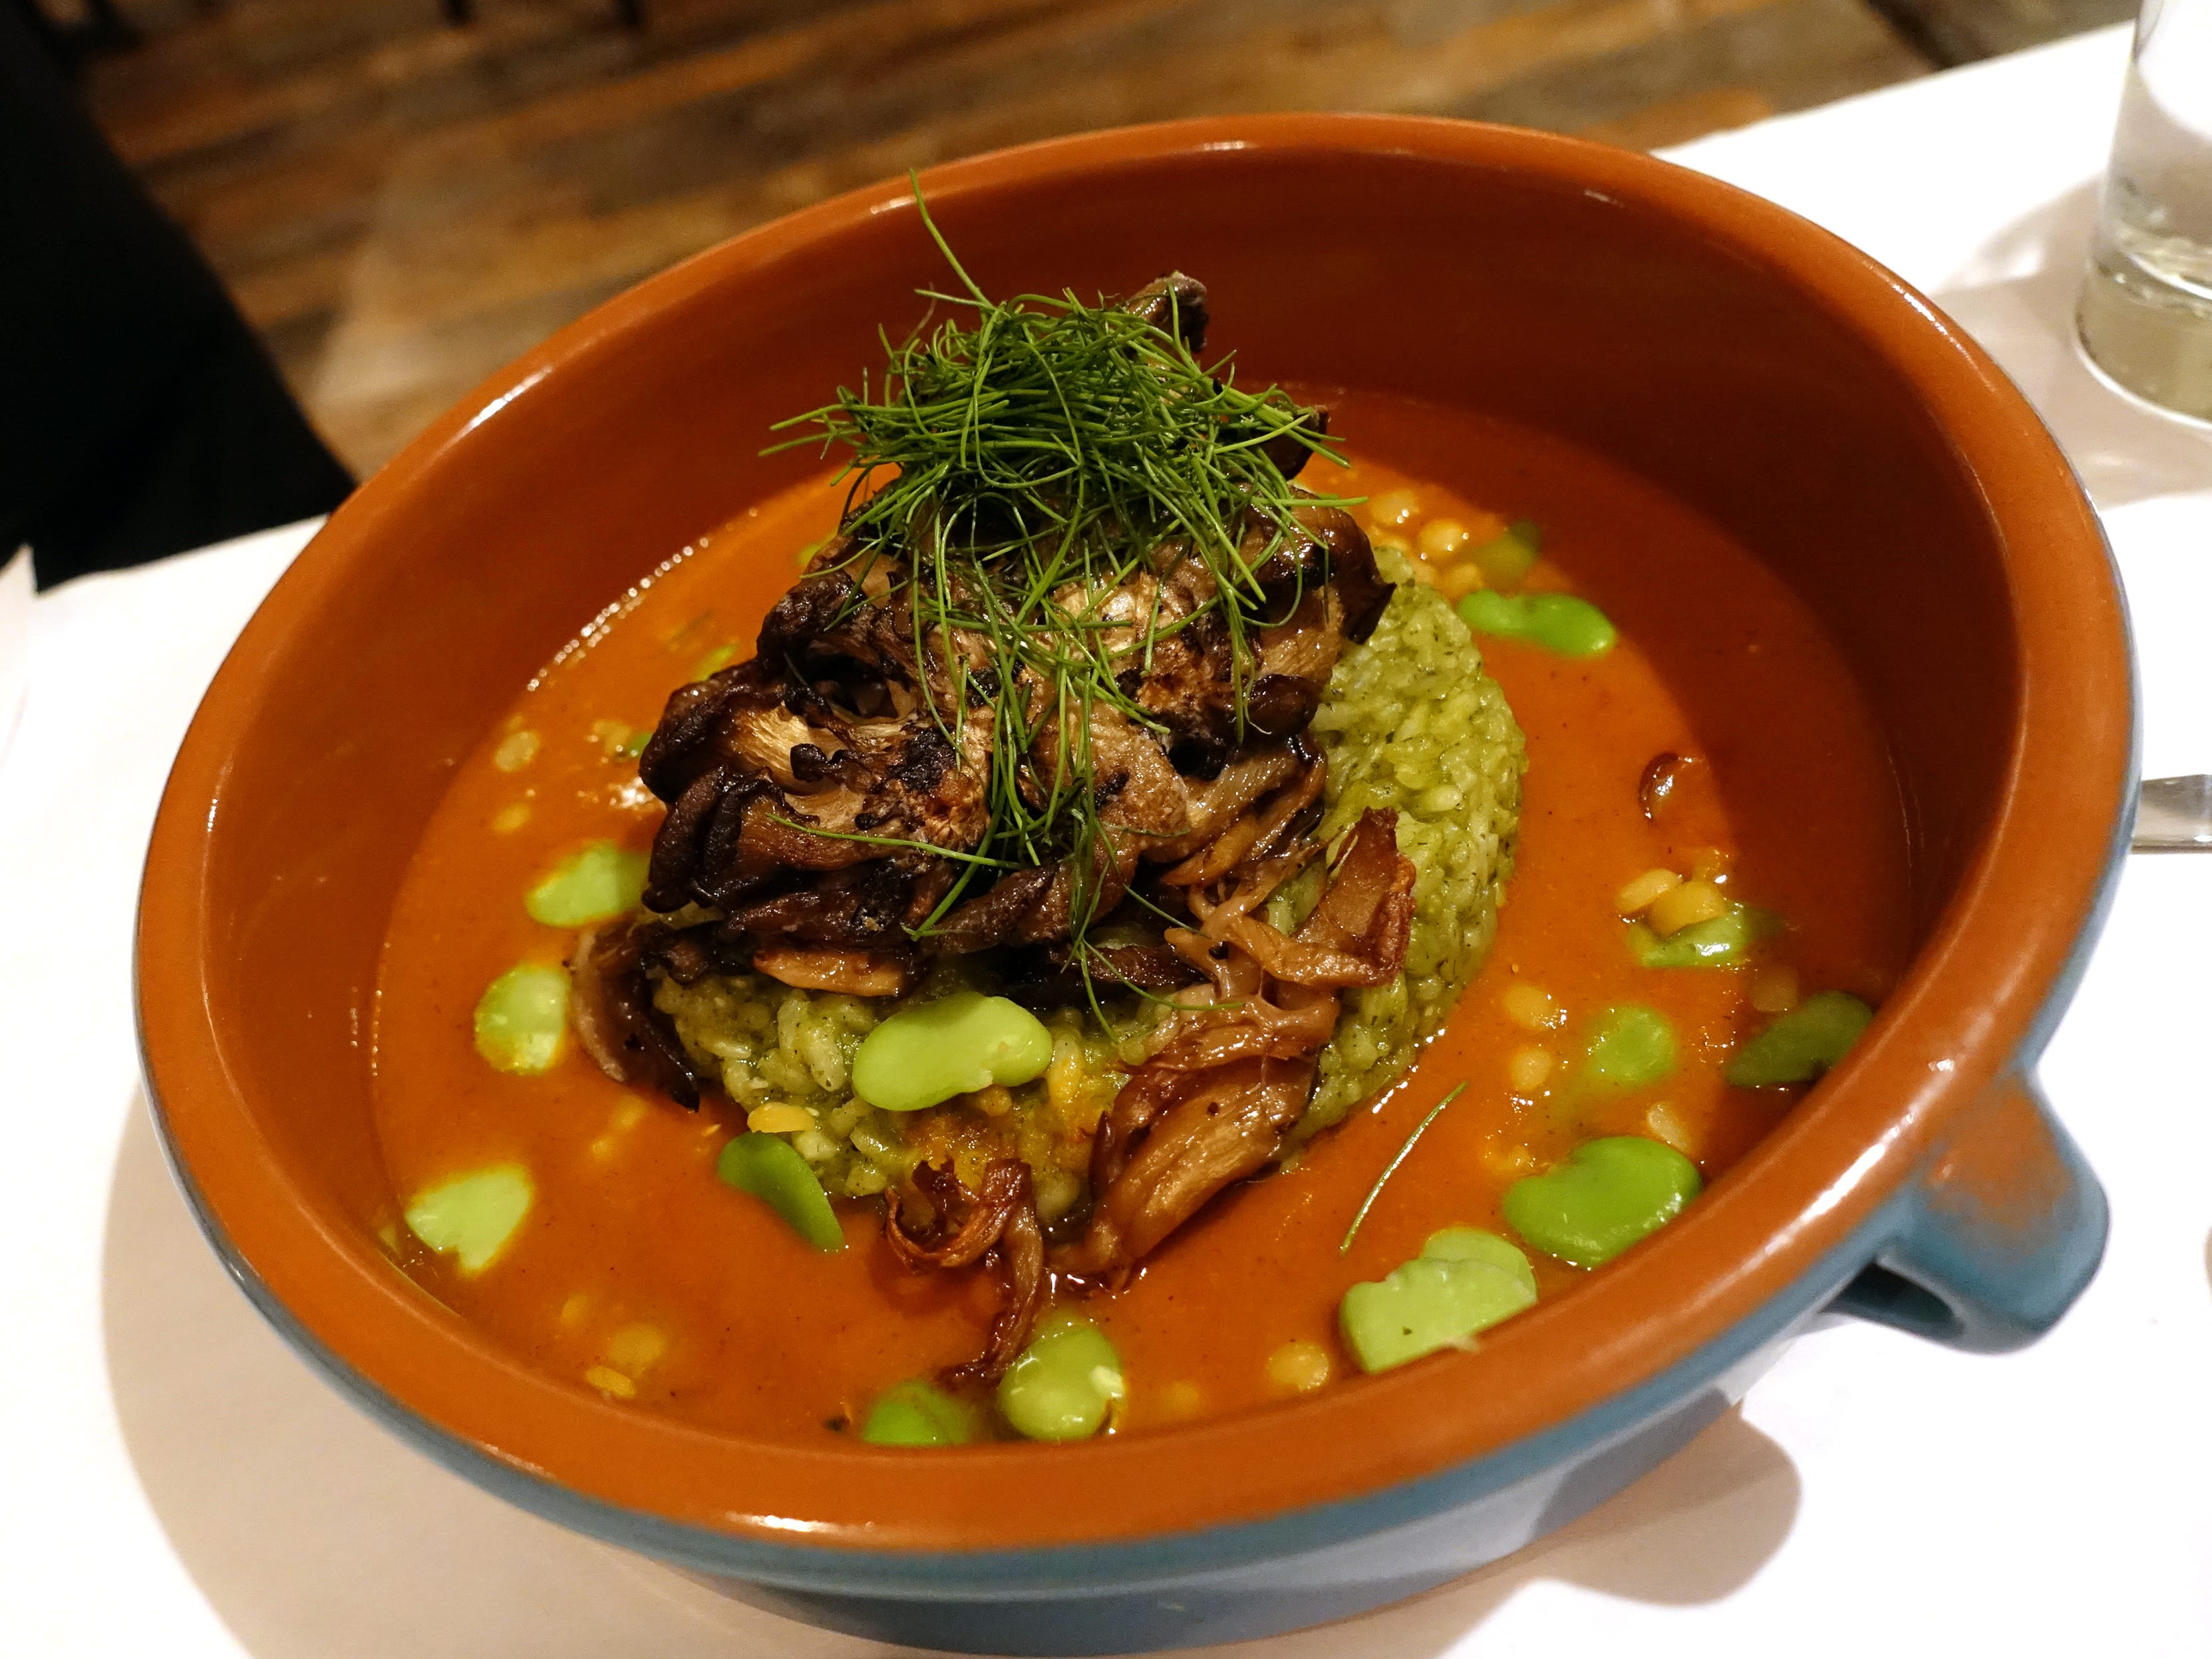 Smoked mushroom cazuela with arroz verde, split peas, fava beans and mole amarillo at Casa Terra in Glendale.